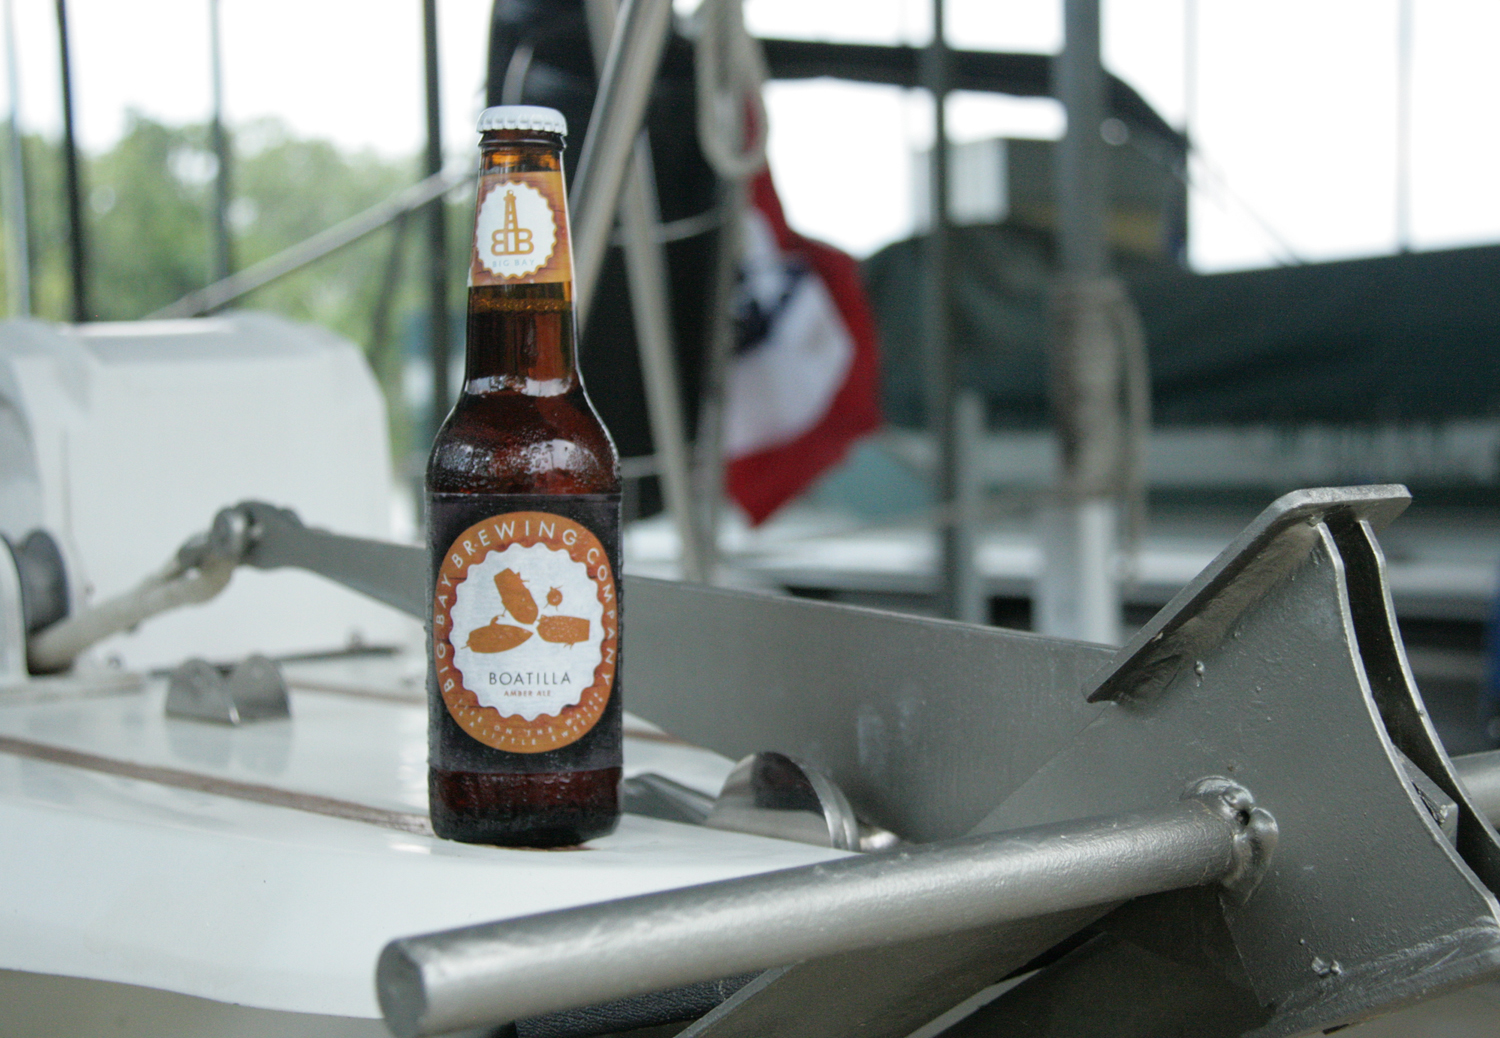 Enjoy Boatilla summer lake beer on the water.